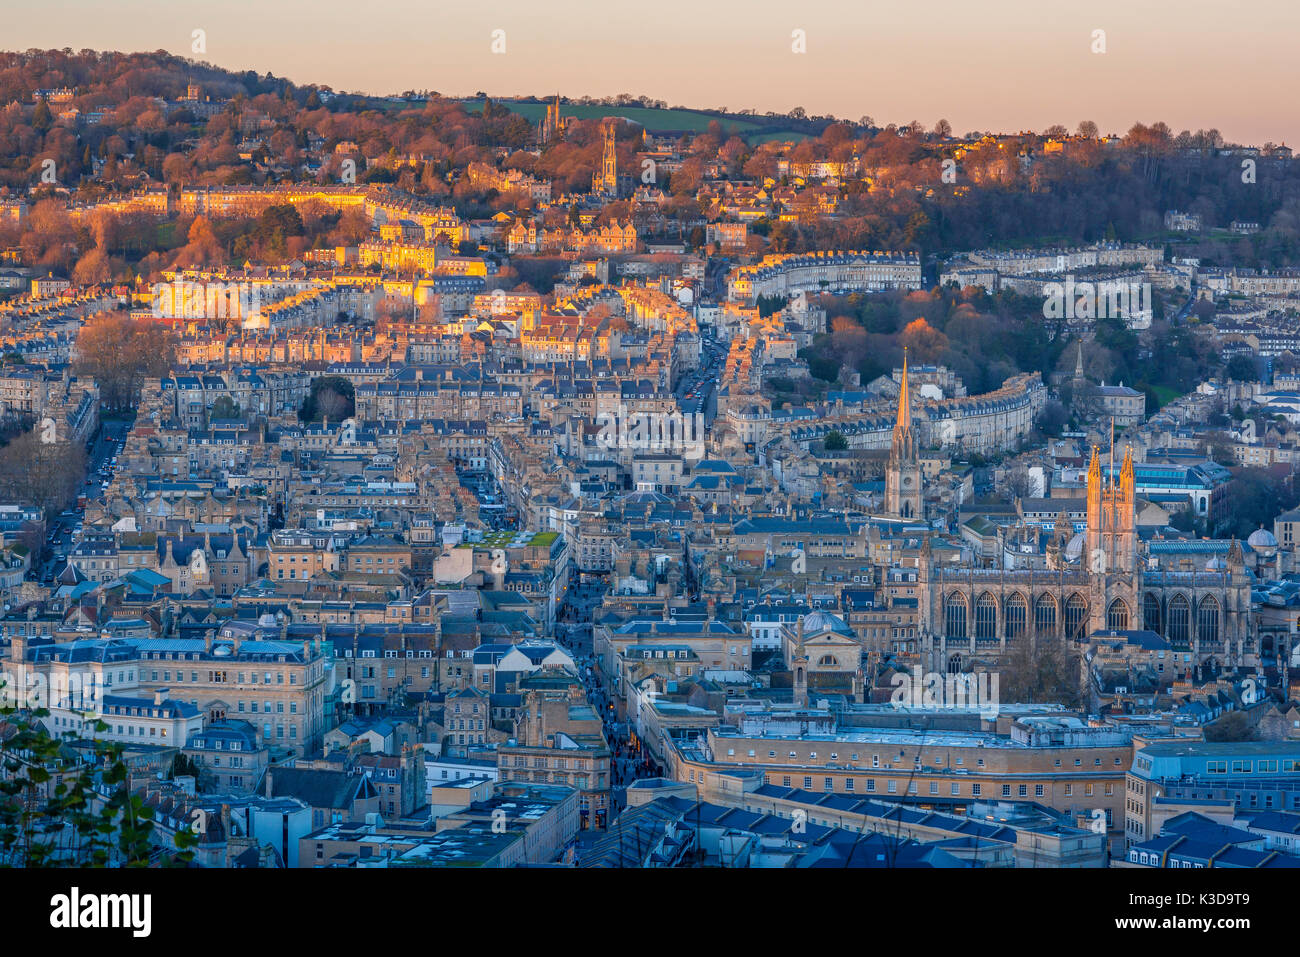 Bath UK city, aerial view of the city of Bath catching the last light of a winter sunset, Somerset, England, UK - Stock Image